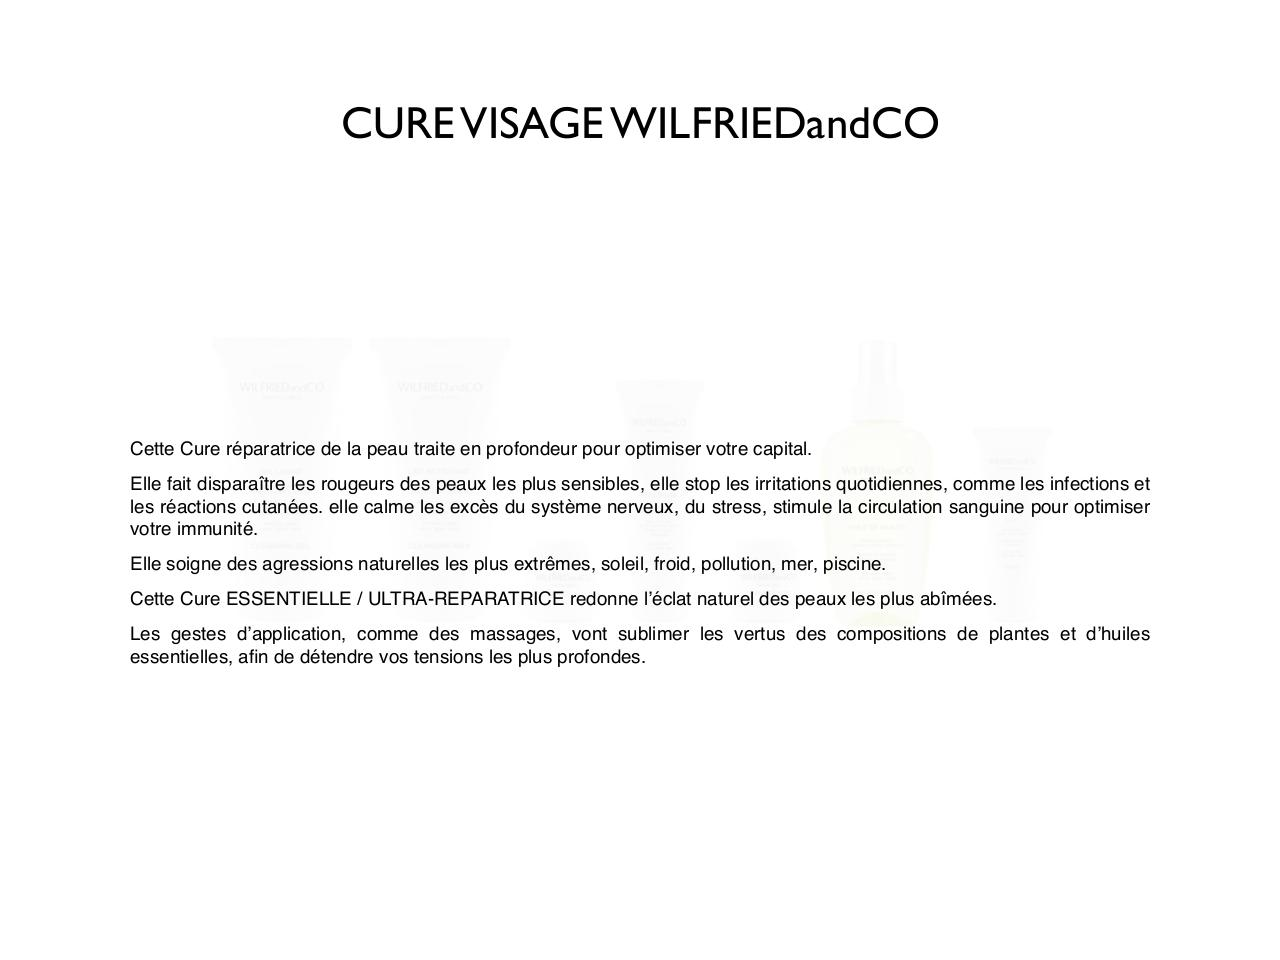 2 _Les cures WILFRIEDandCO_ ULTRA-REPARATRICE VISAGE.pdf - page 2/18